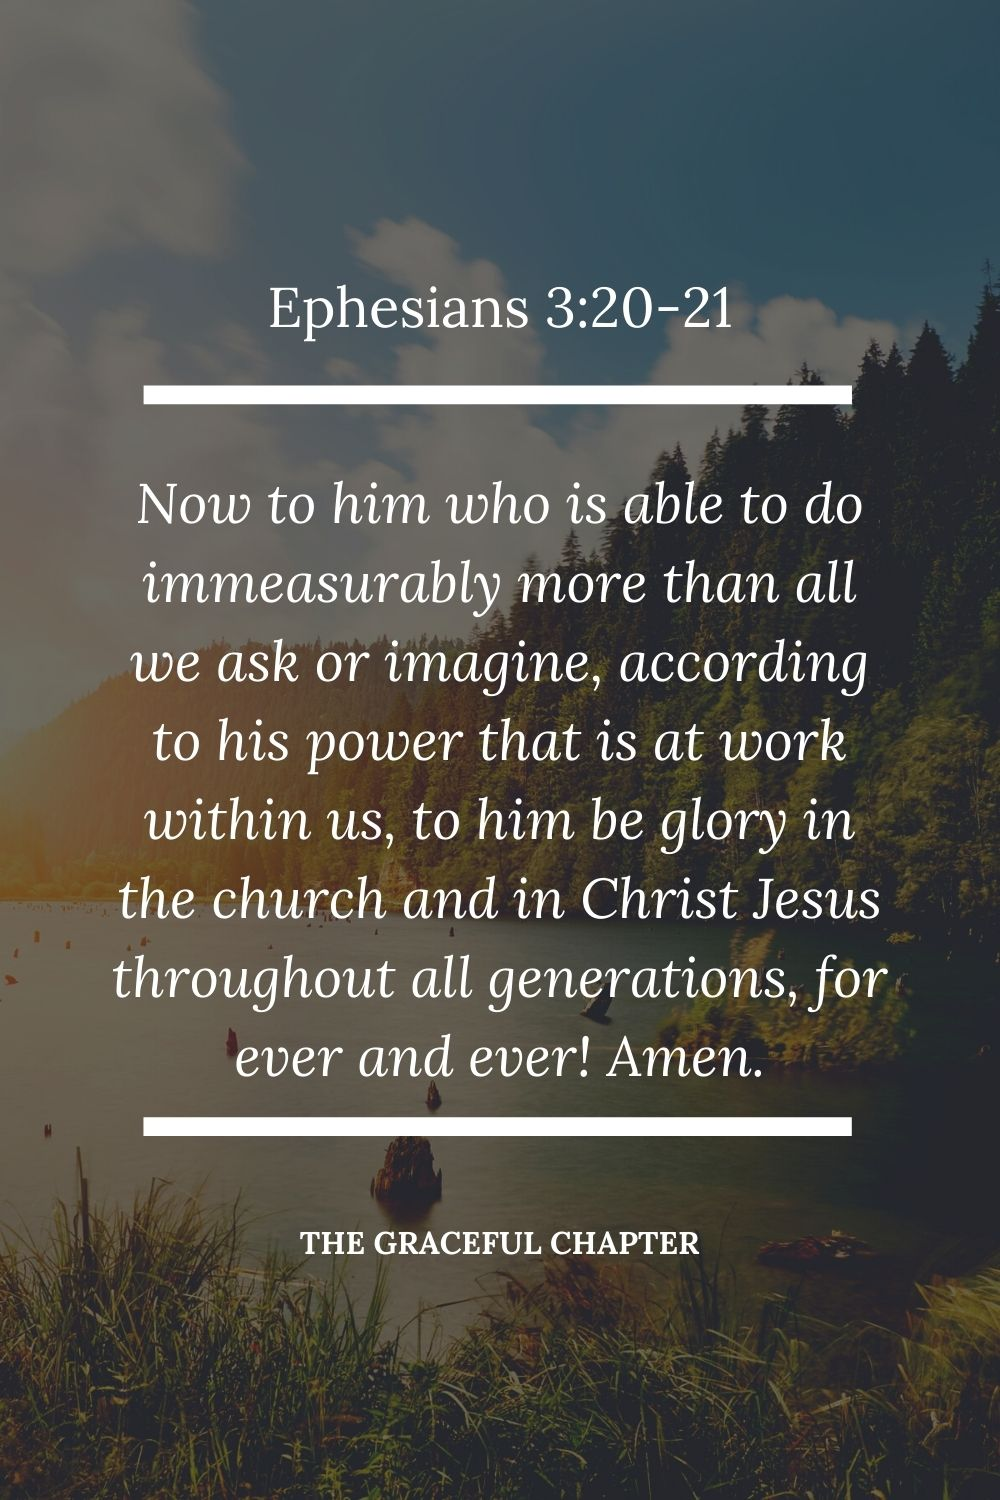 Now to him who is able to do immeasurably more than all we ask or imagine, according to his power that is at work within us,  to him be glory in the church and in Christ Jesus throughout all generations, forever and ever! Amen. Ephesians 3:20-21